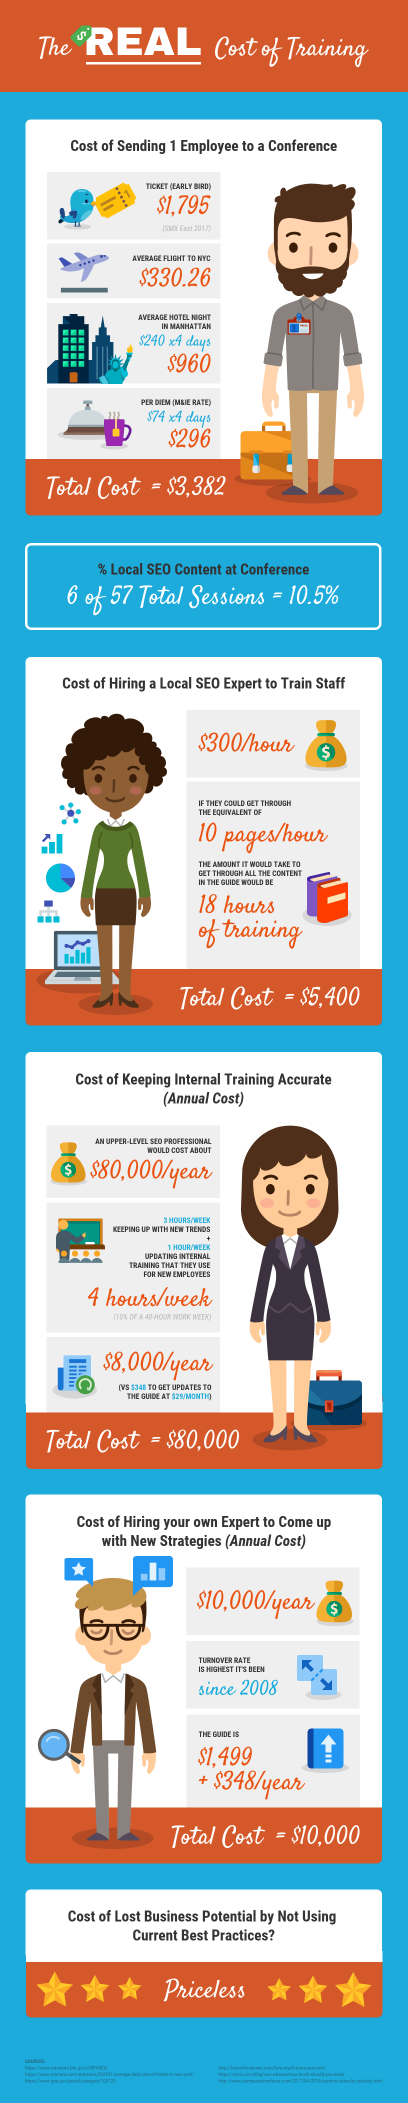 the real cost of training infographic infographic template